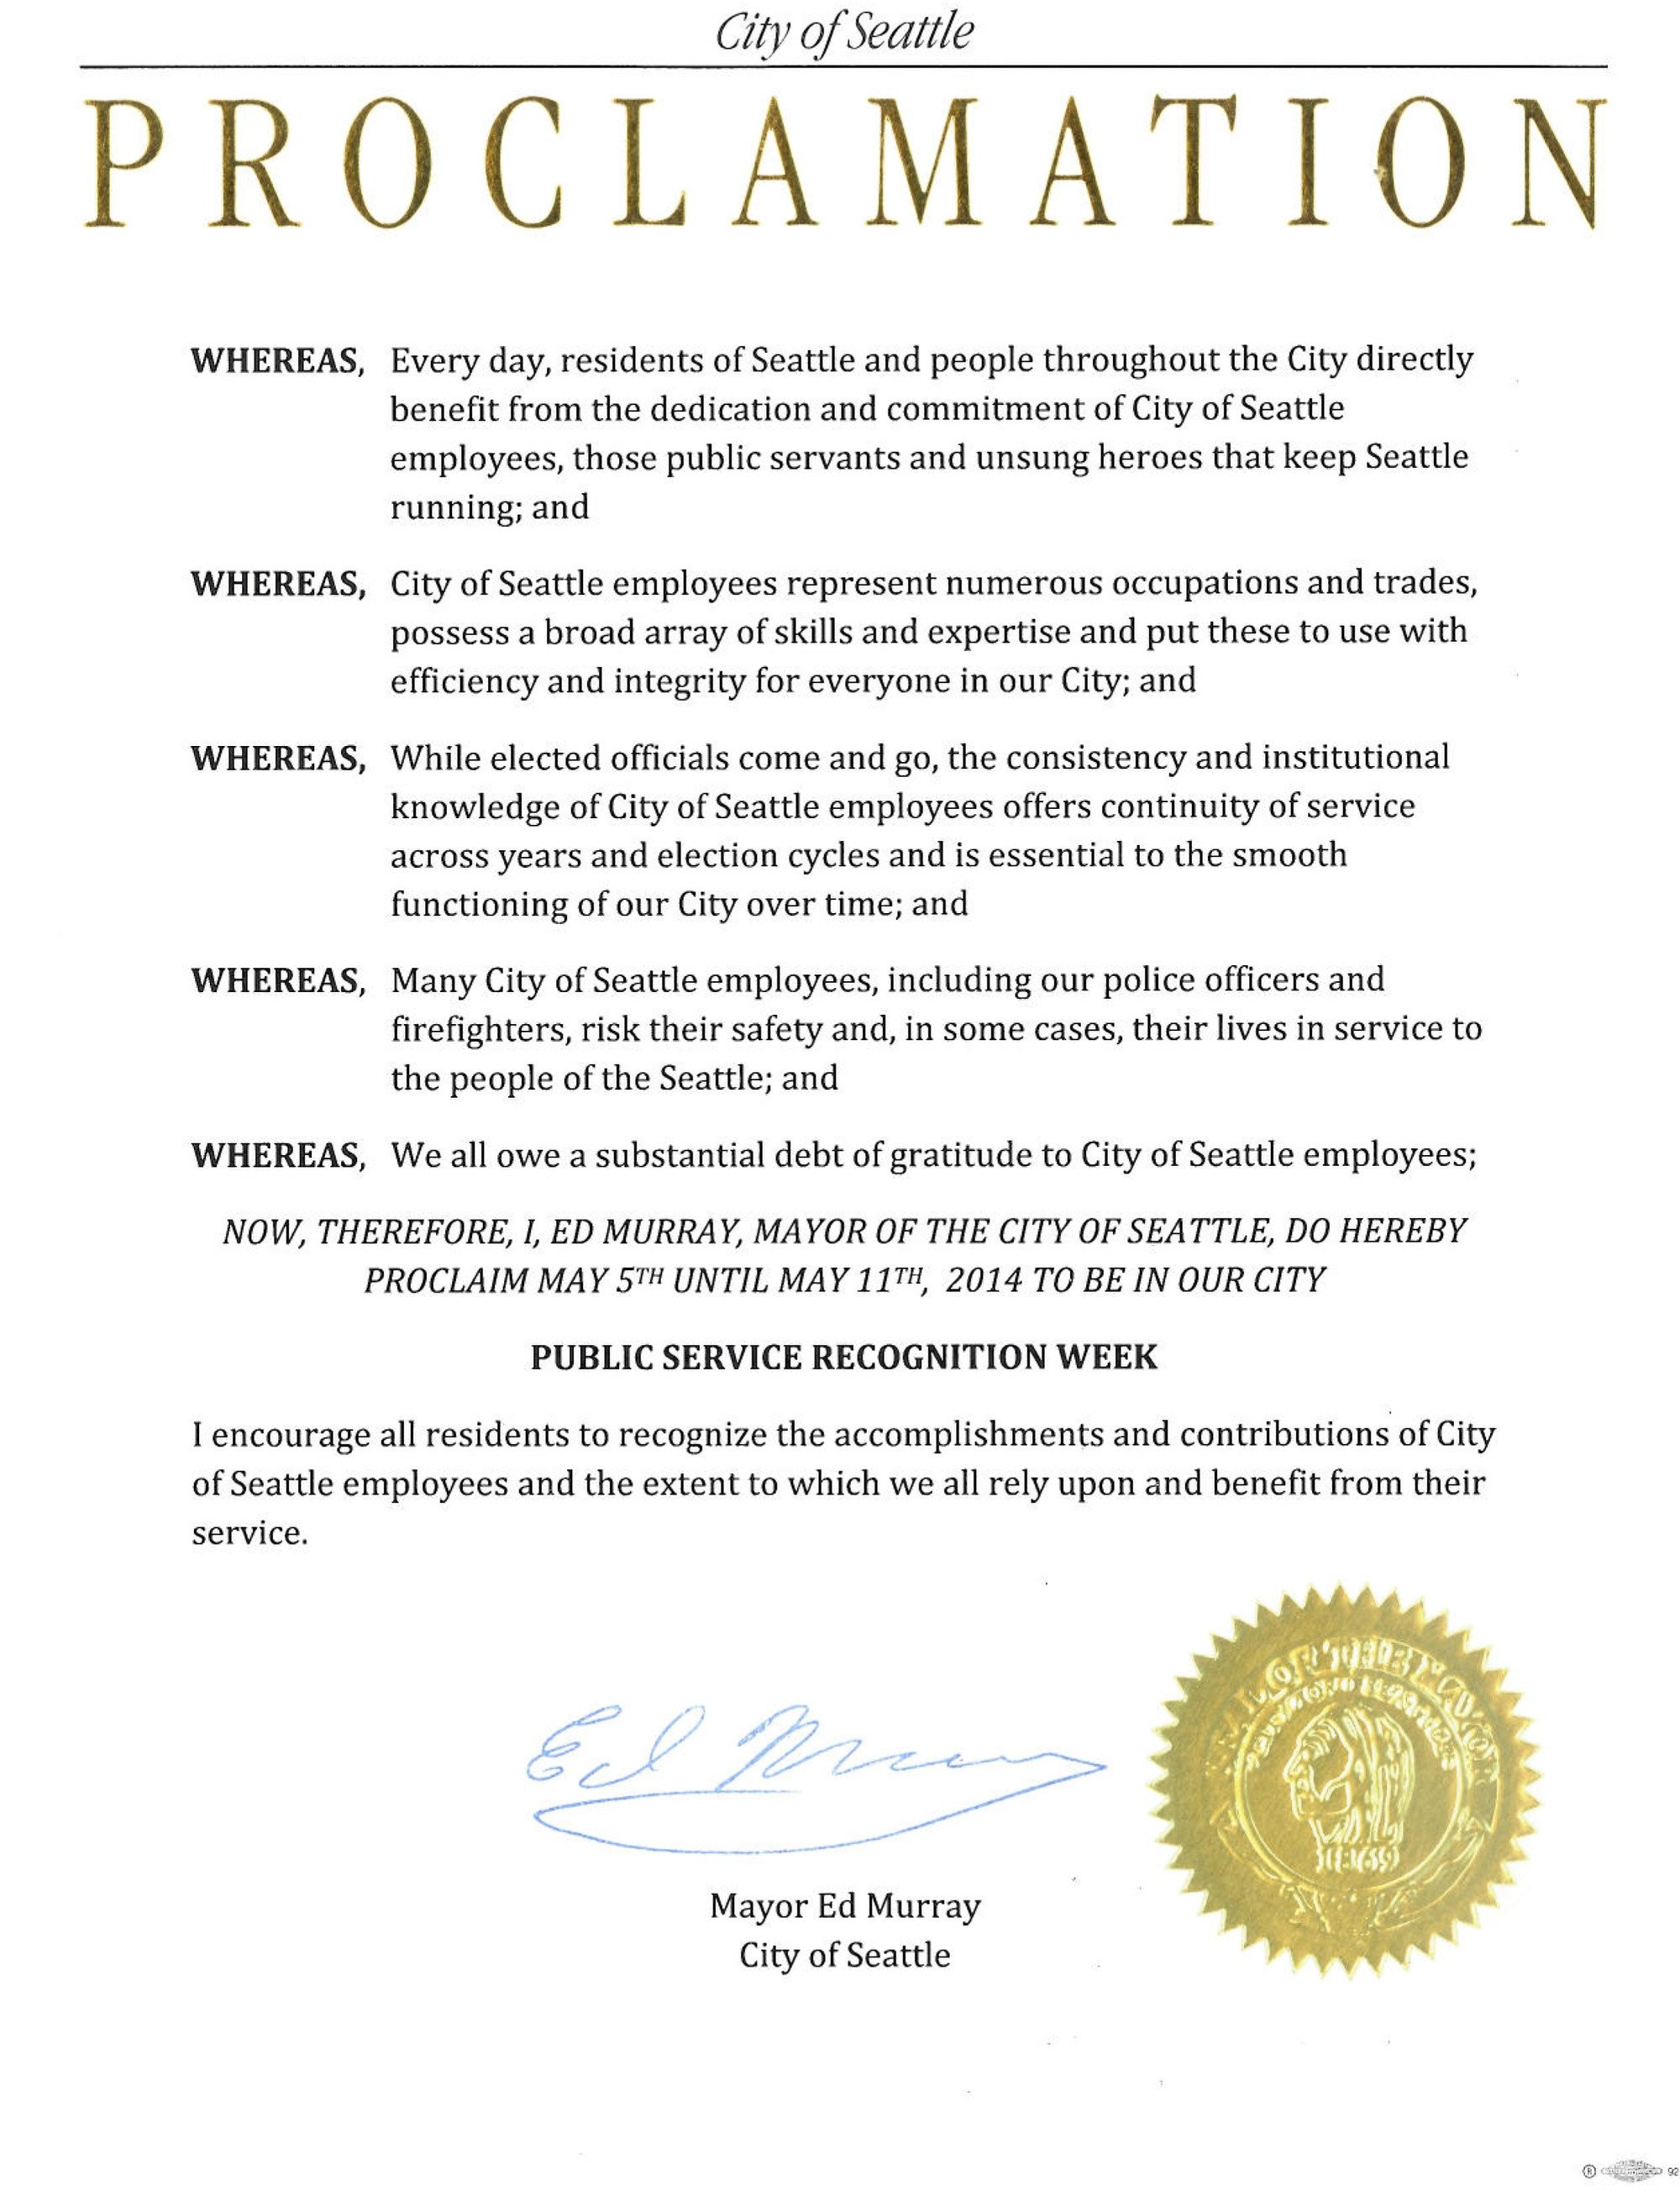 Mayoral Proclamation Template Proclamations Archives Mayor Murray